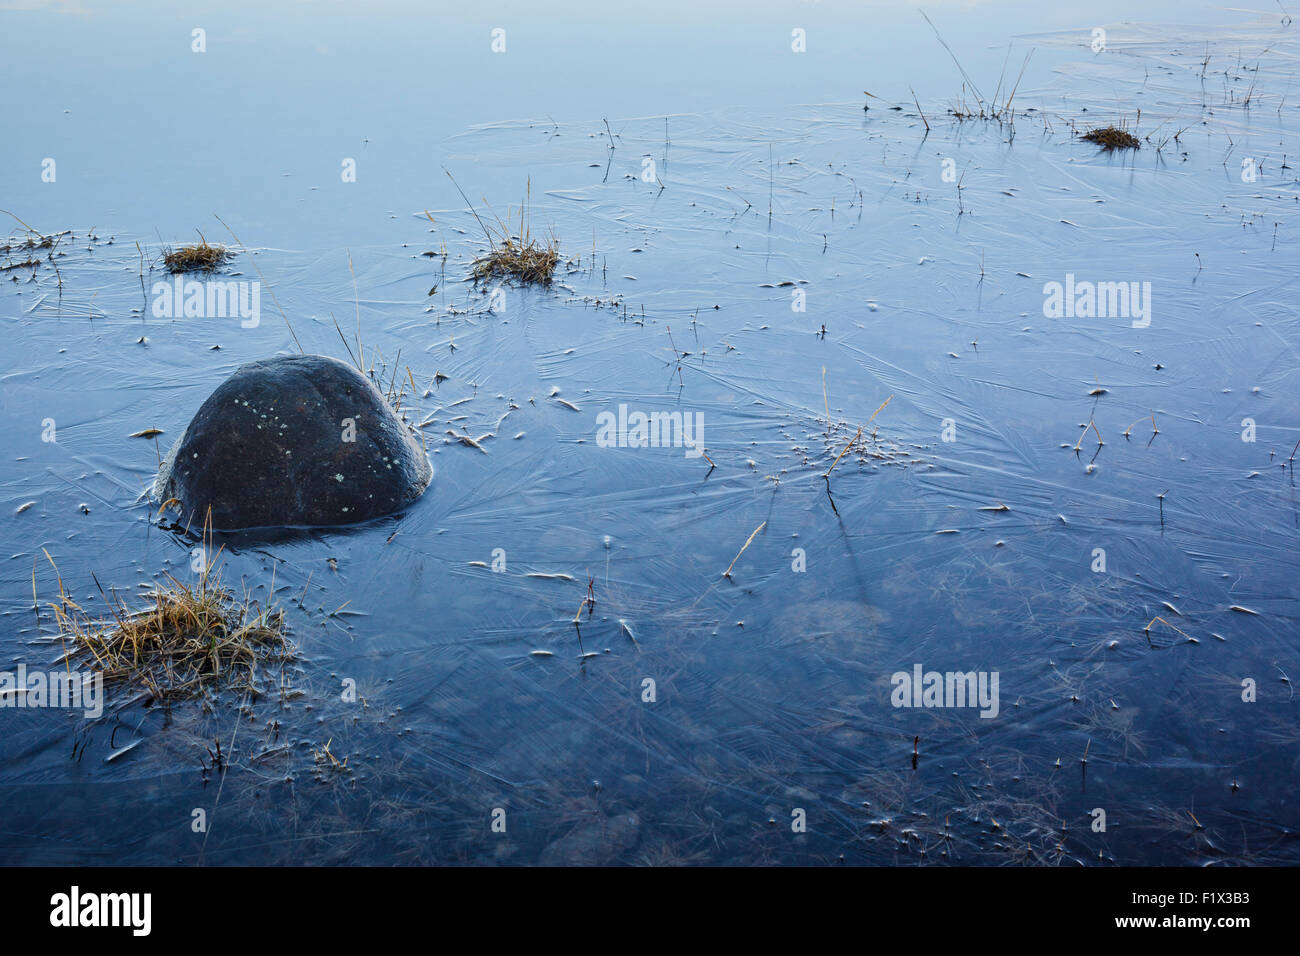 Vegetation captured in the ice of small lake. Southern Iceland. - Stock Image